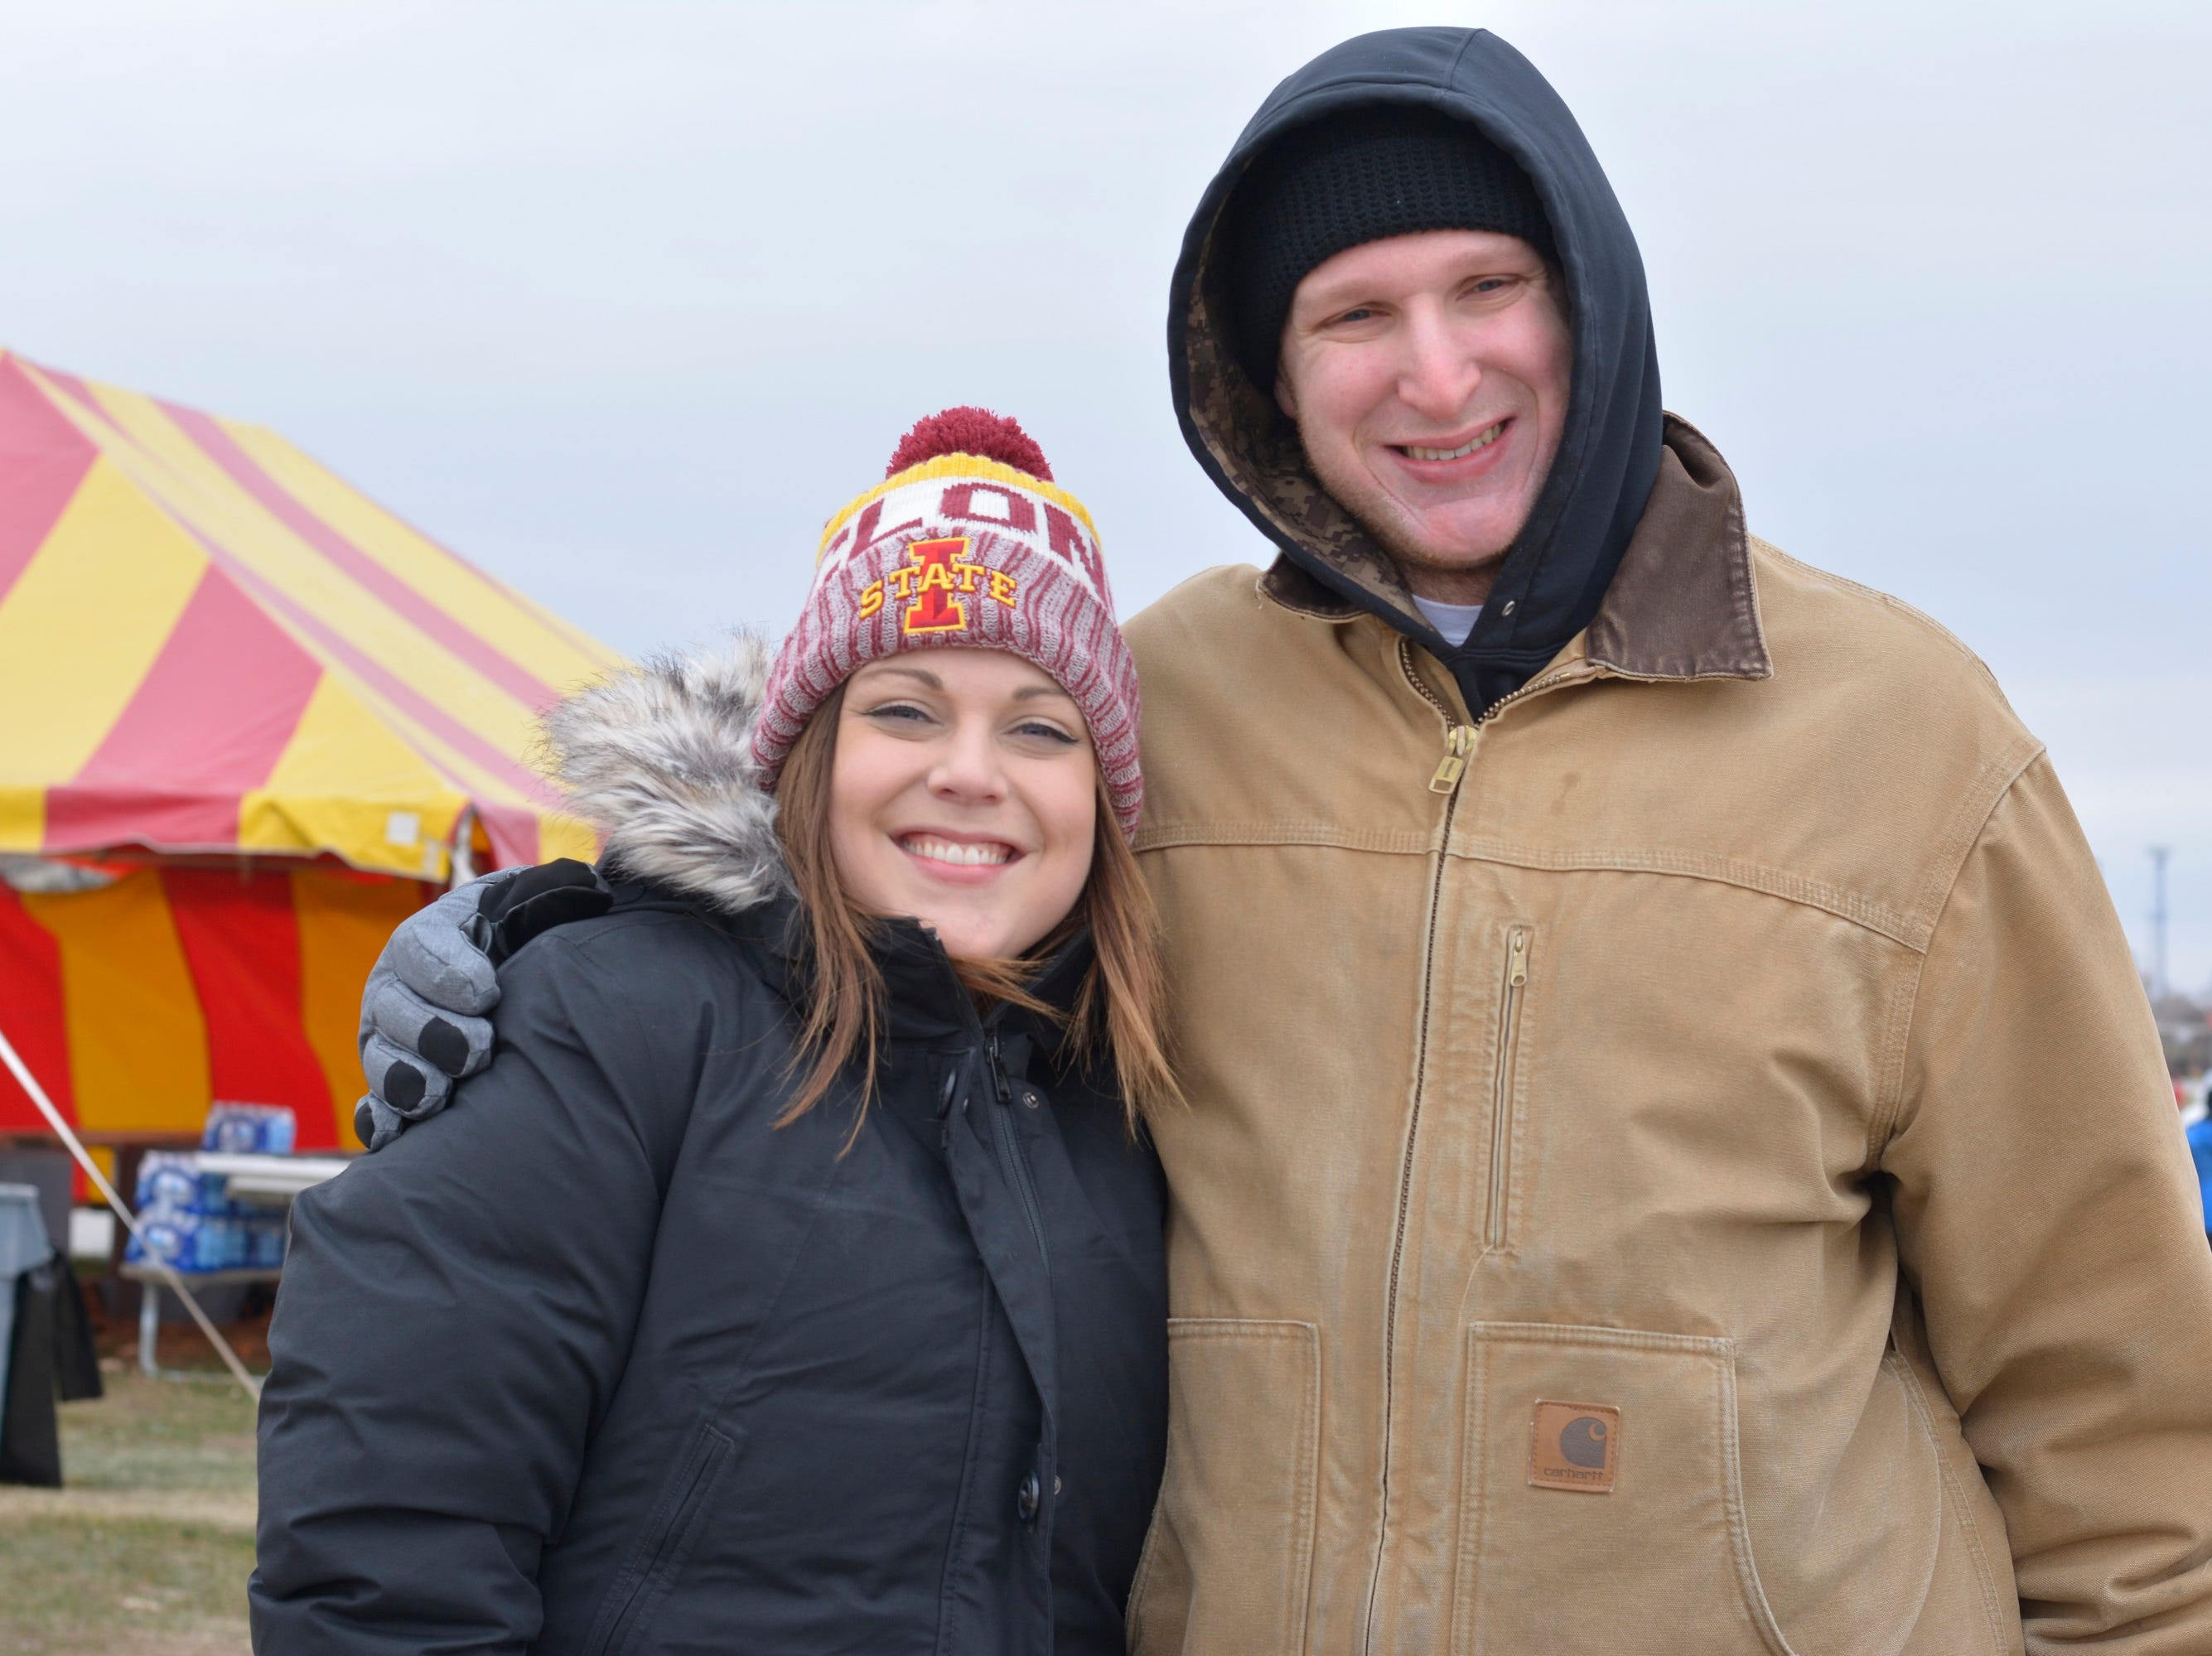 Carlee Sabus and Matthew Hanselman before the Iowa State University football game against Baylor in Ames on Nov. 10.